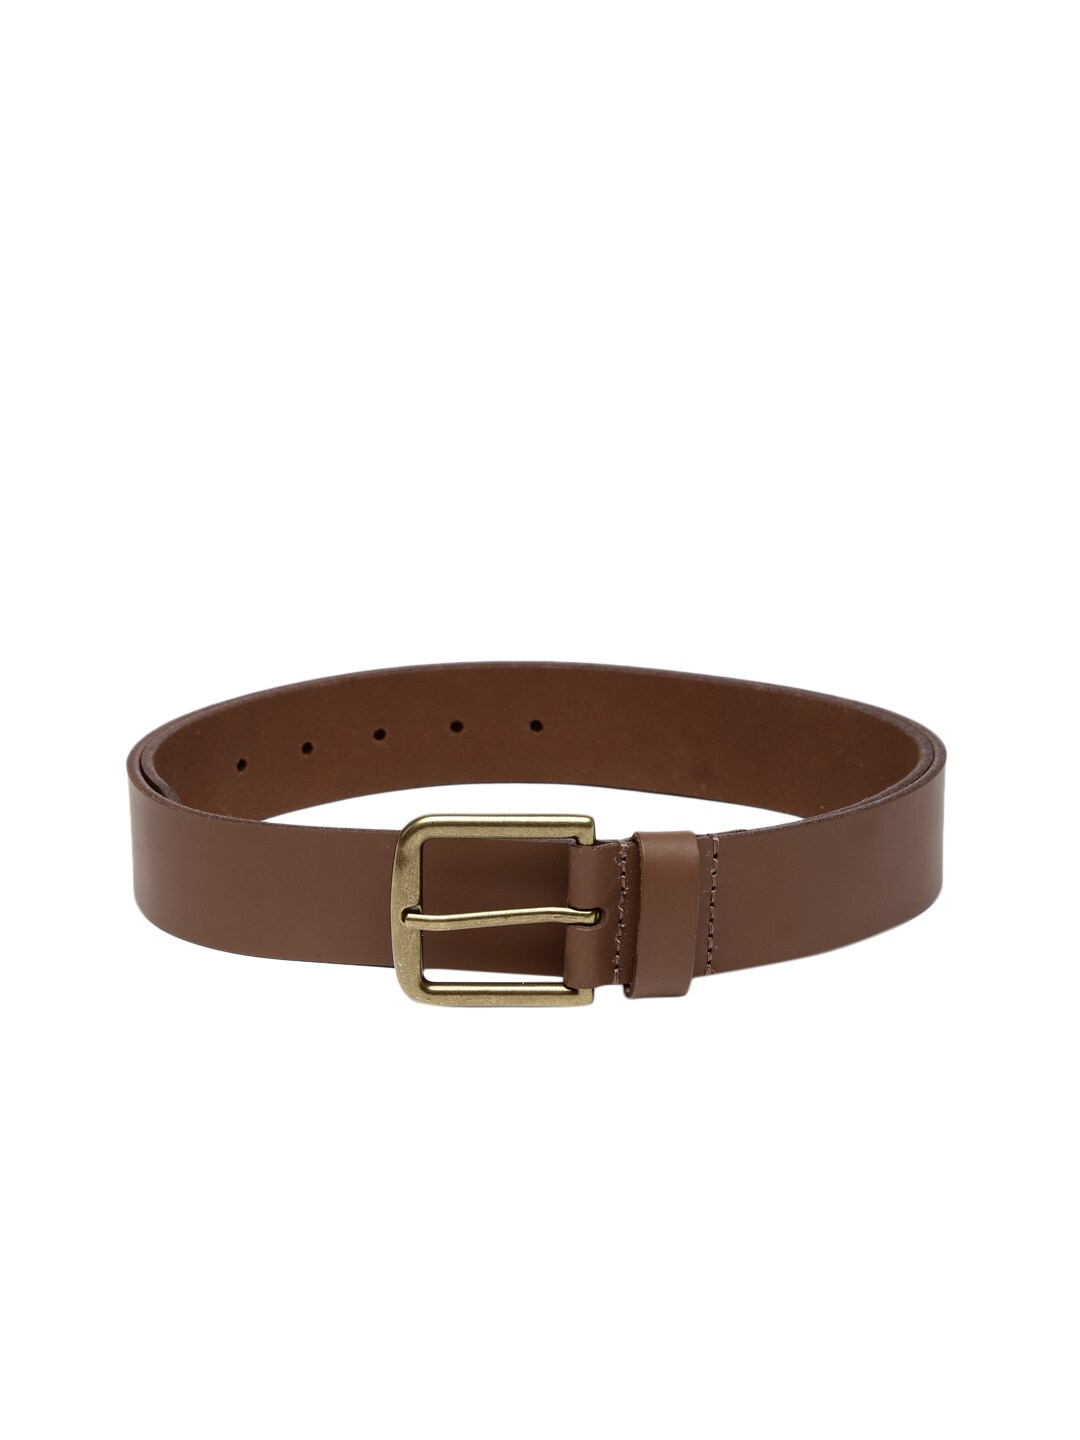 Celio Brown Leather Belt